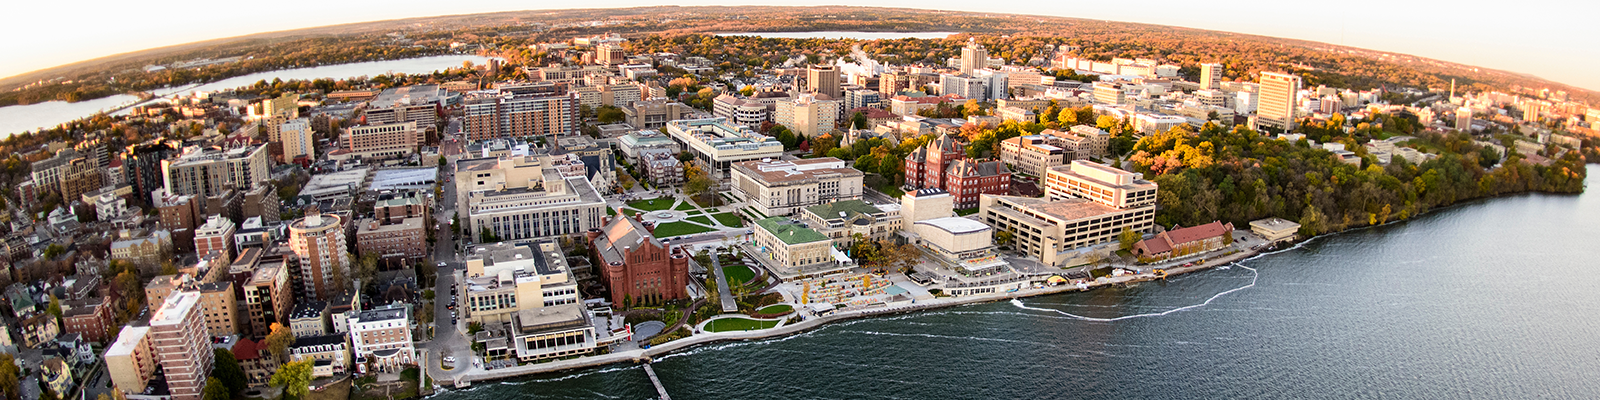 Aerial view of the UW Madison campus and lakeshore